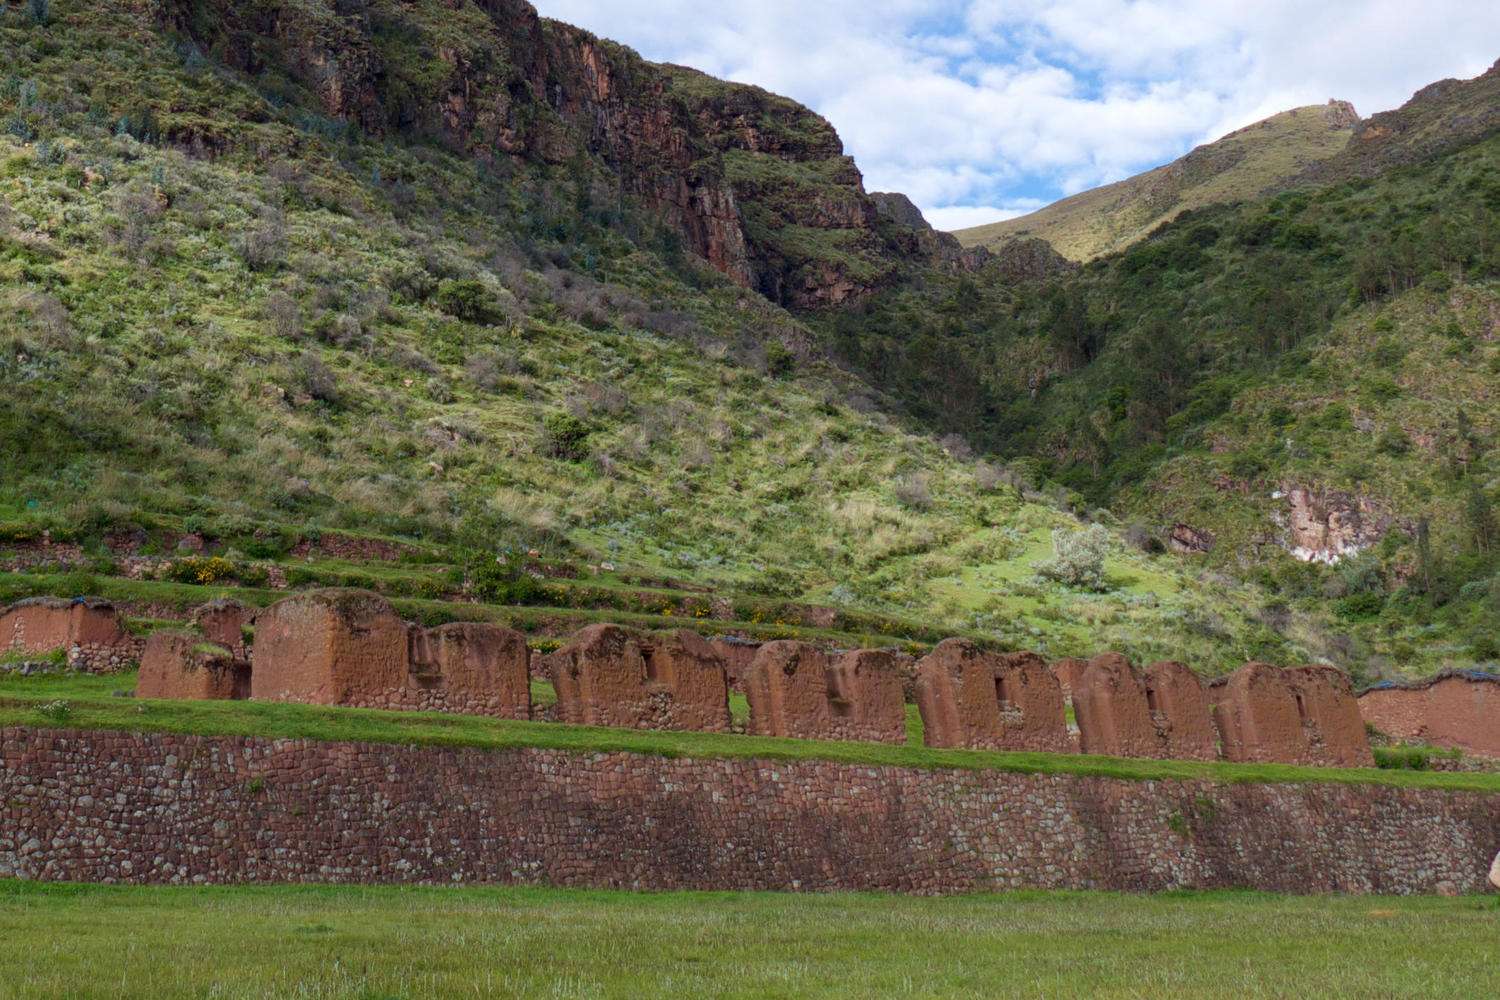 The Inca ruins of Huchuyqosqo, set on a plateau overlooking the Sacred Valley